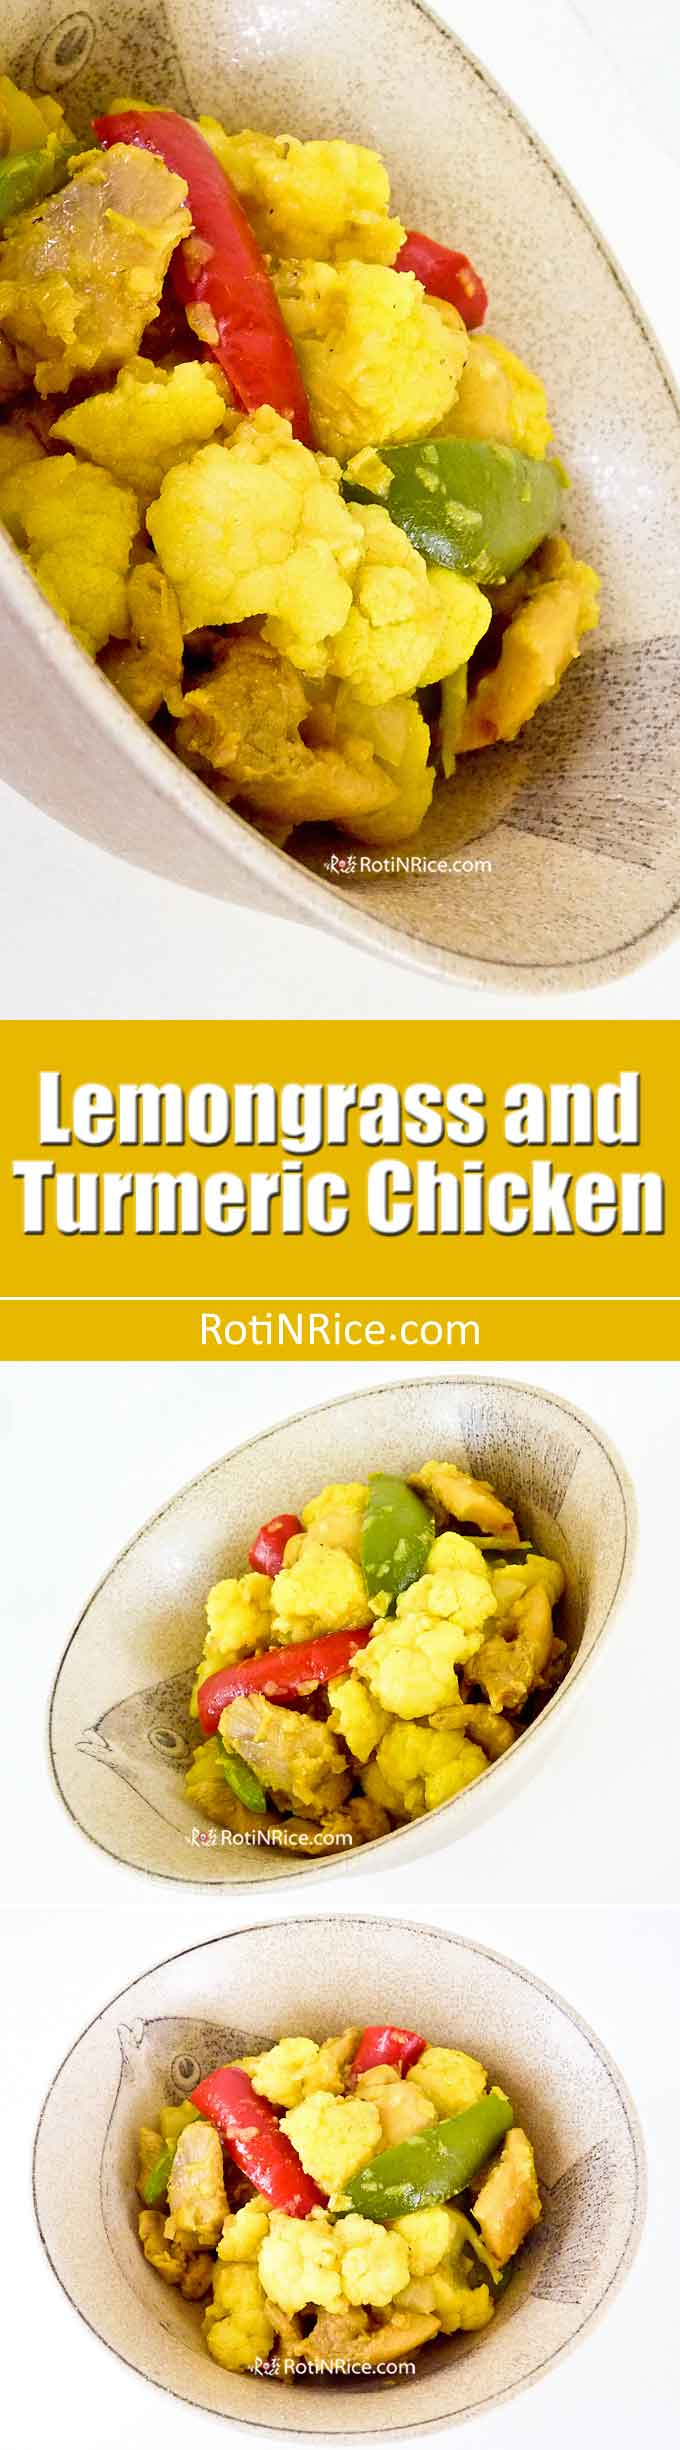 Fragrant Lemongrass and Turmeric Chicken with cauliflower, peppers, and zesty lime juice. Delicious served with spiced basmati rice. | RotiNRice.com